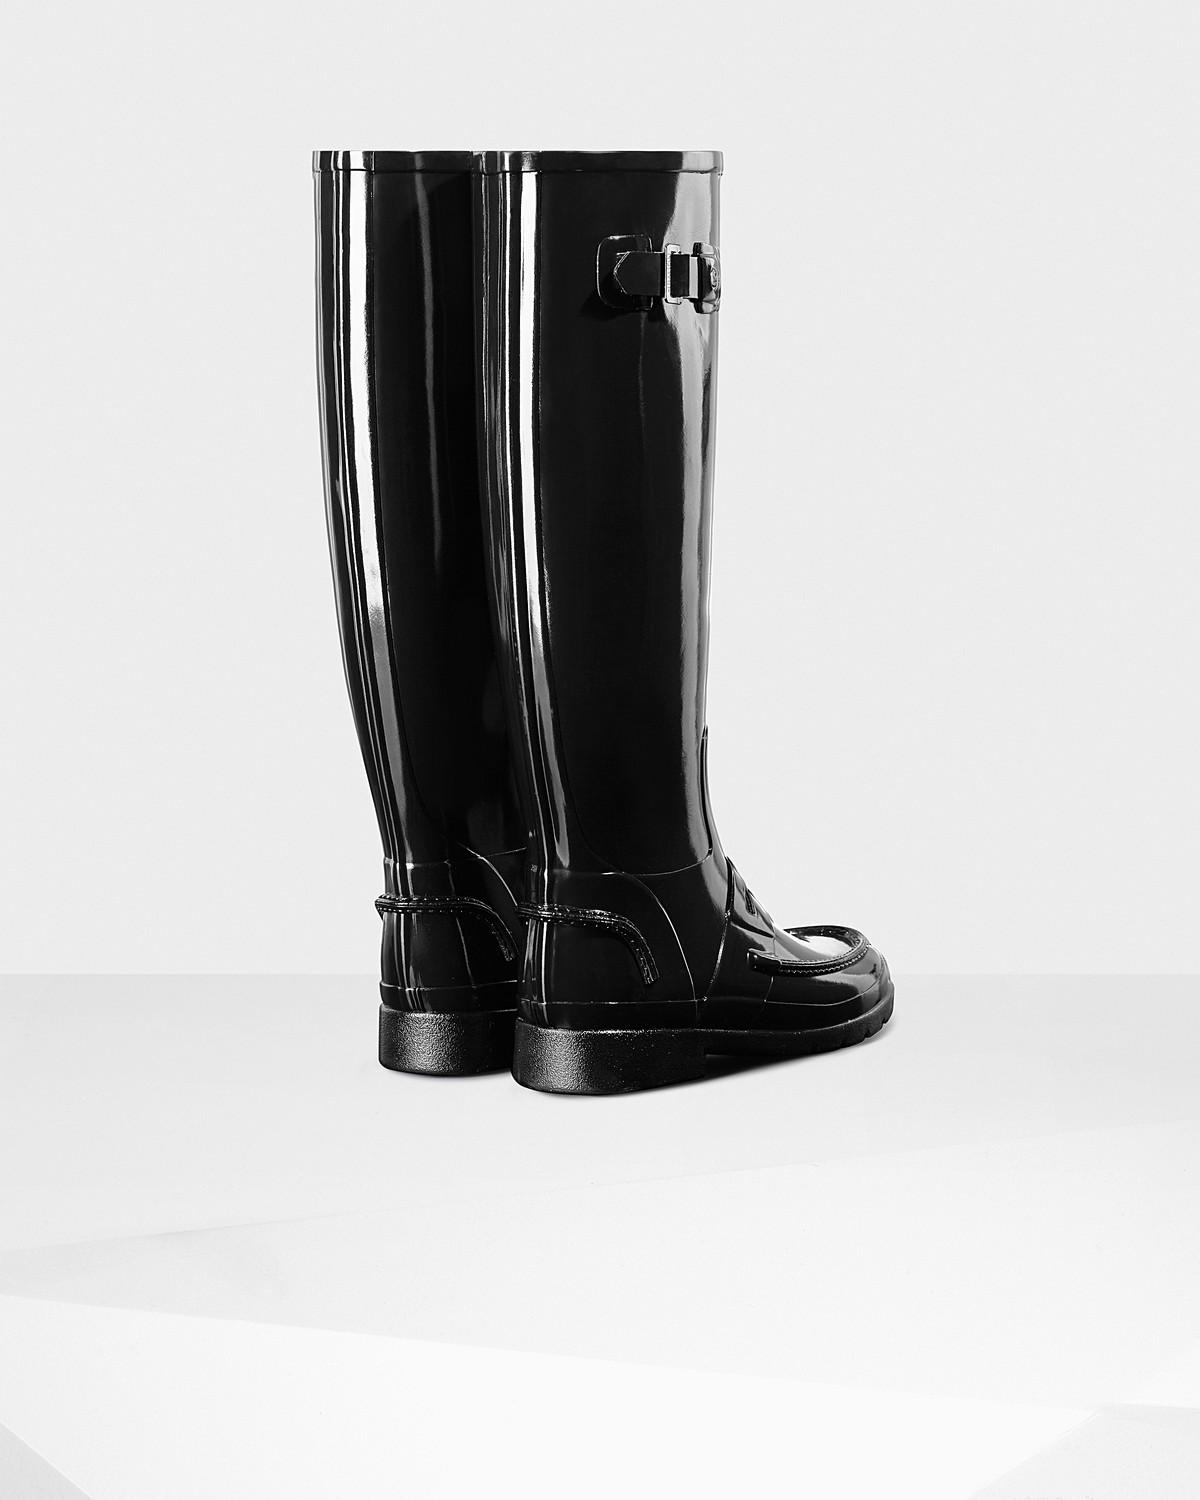 4b3e77c618f Lyst - HUNTER Women s Original Refined Penny Loafer Tall Boots in Black